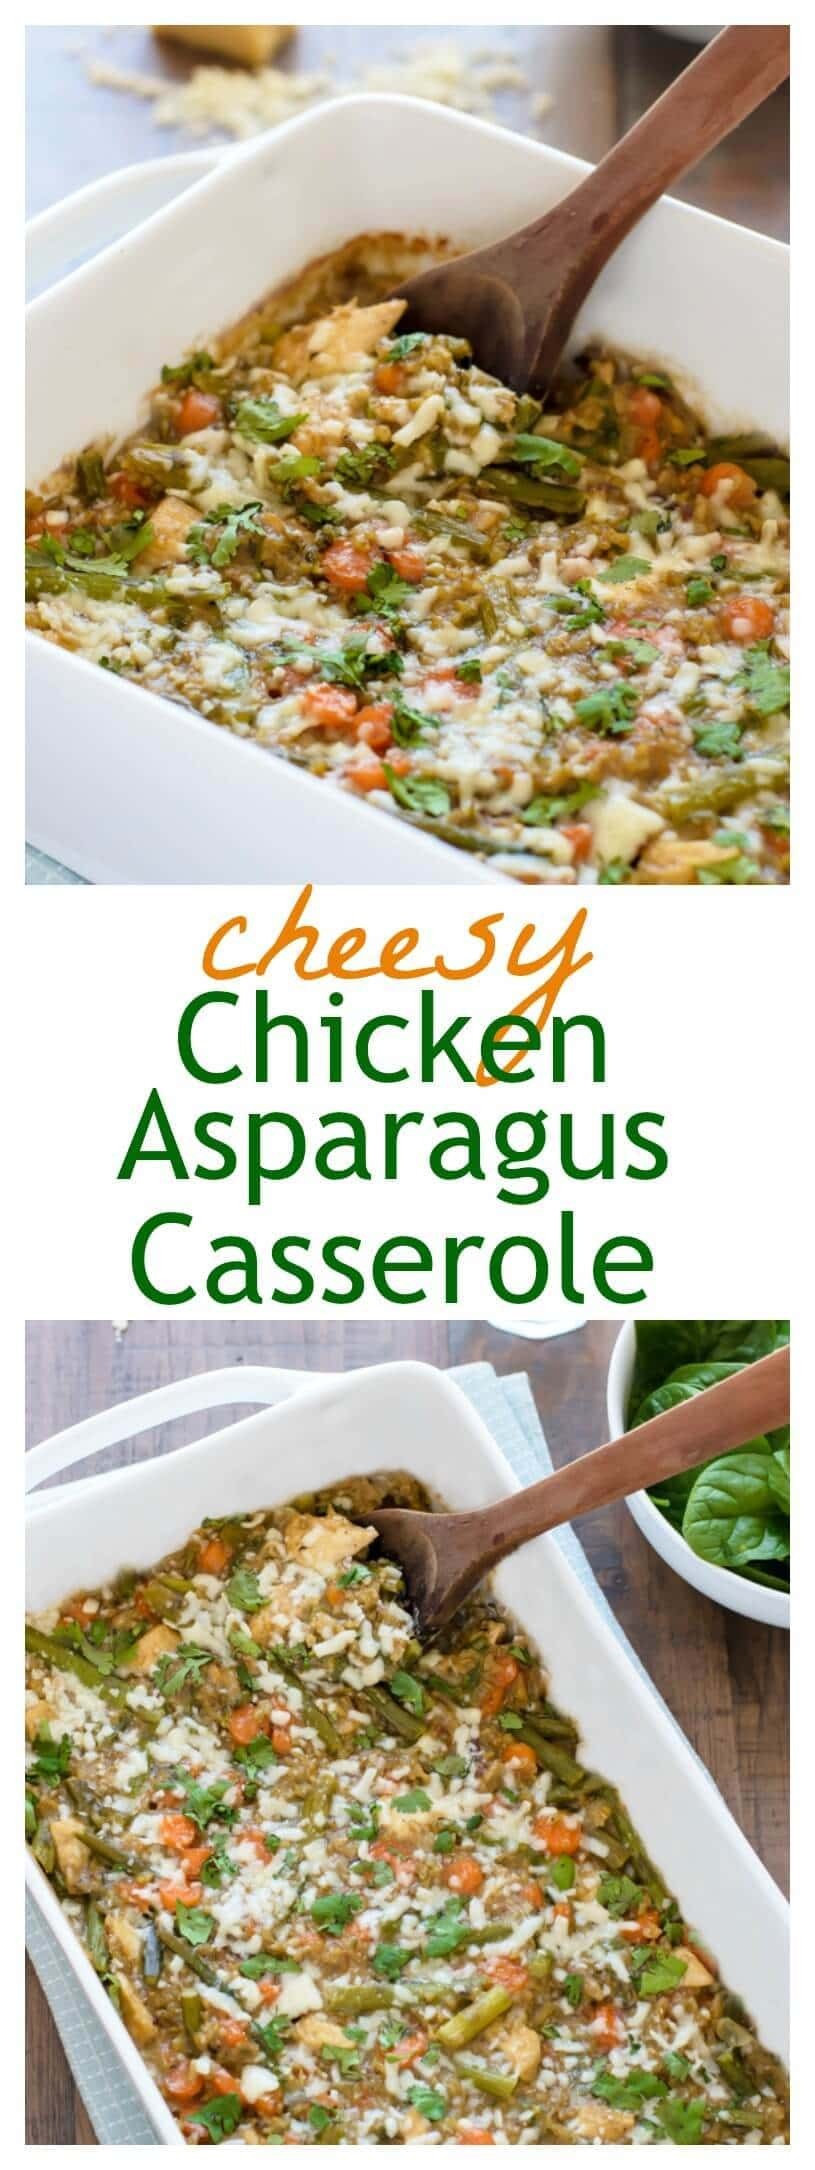 Cheesy Chicken Asparagus Casserole. Healthy and freezer friendly!